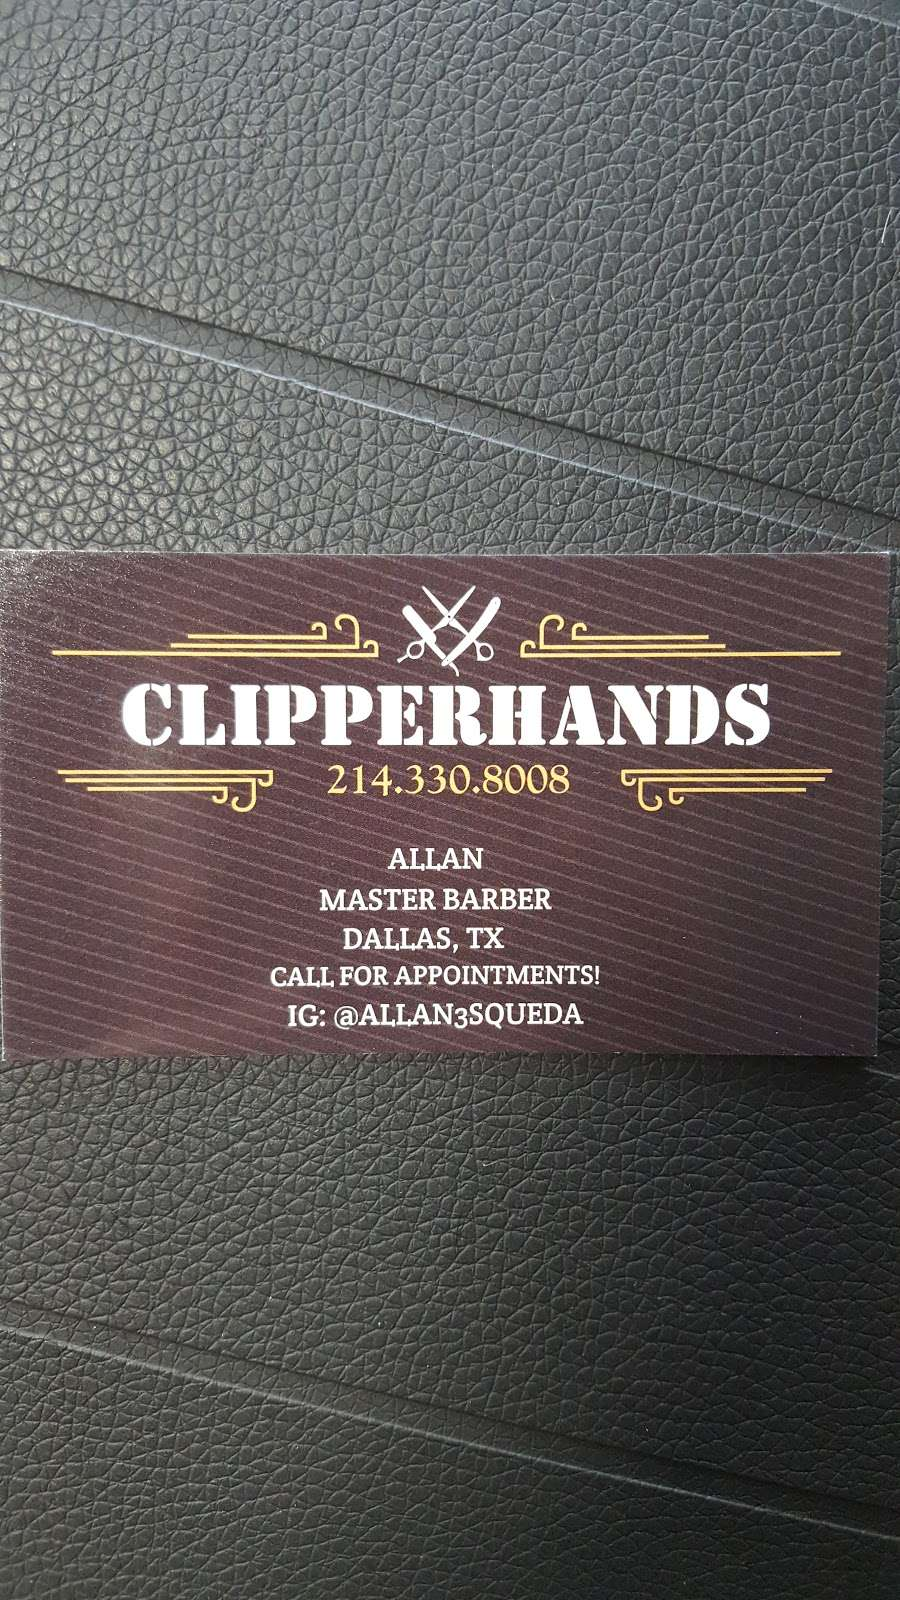 CLIPPERHANDS BARBER AND MOBILE BARBER. - hair care  | Photo 2 of 3 | Address: 2300 Keller Springs Rd, Carrollton, TX 75006, USA | Phone: (214) 330-8008